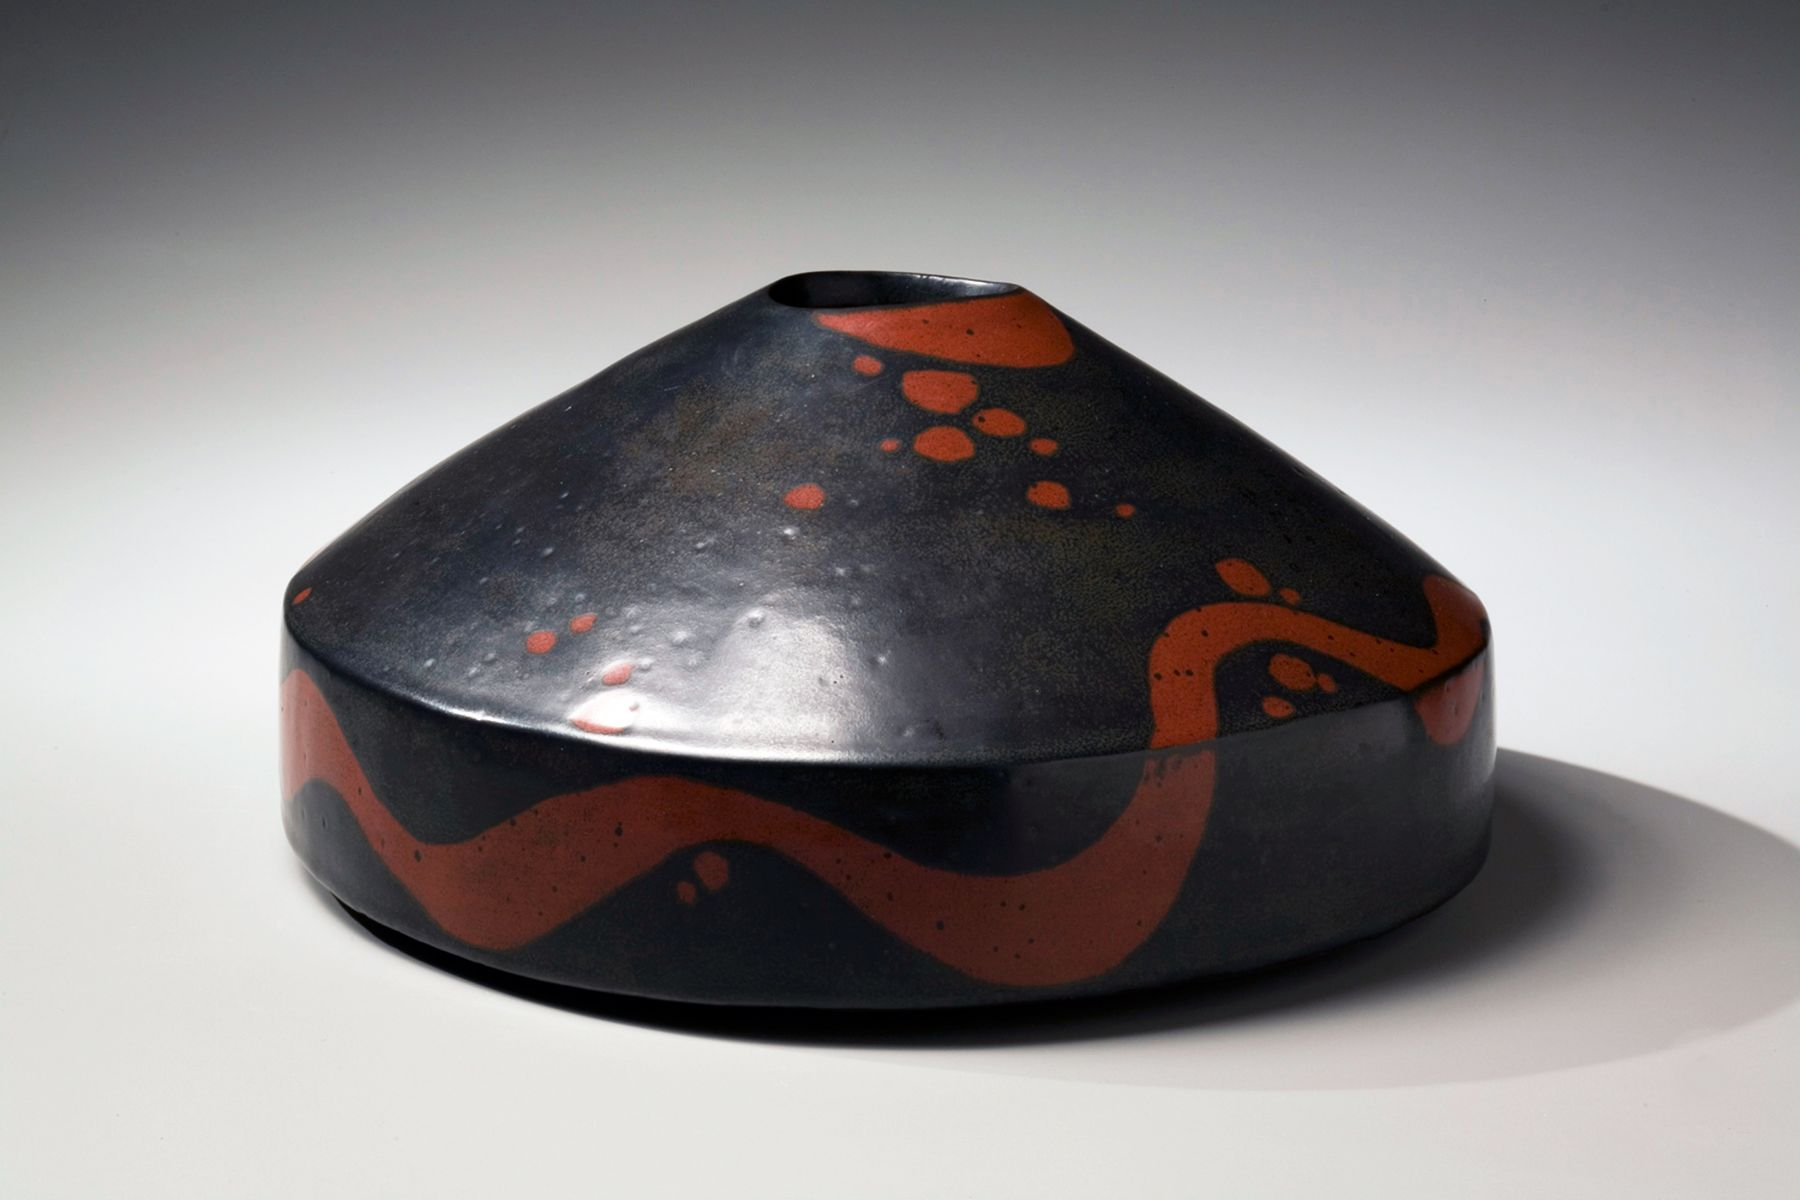 Morino Taimei, Flattened, round vessel with conical top, 2007, Japanese modern, contemporary, ceramics, sculpture